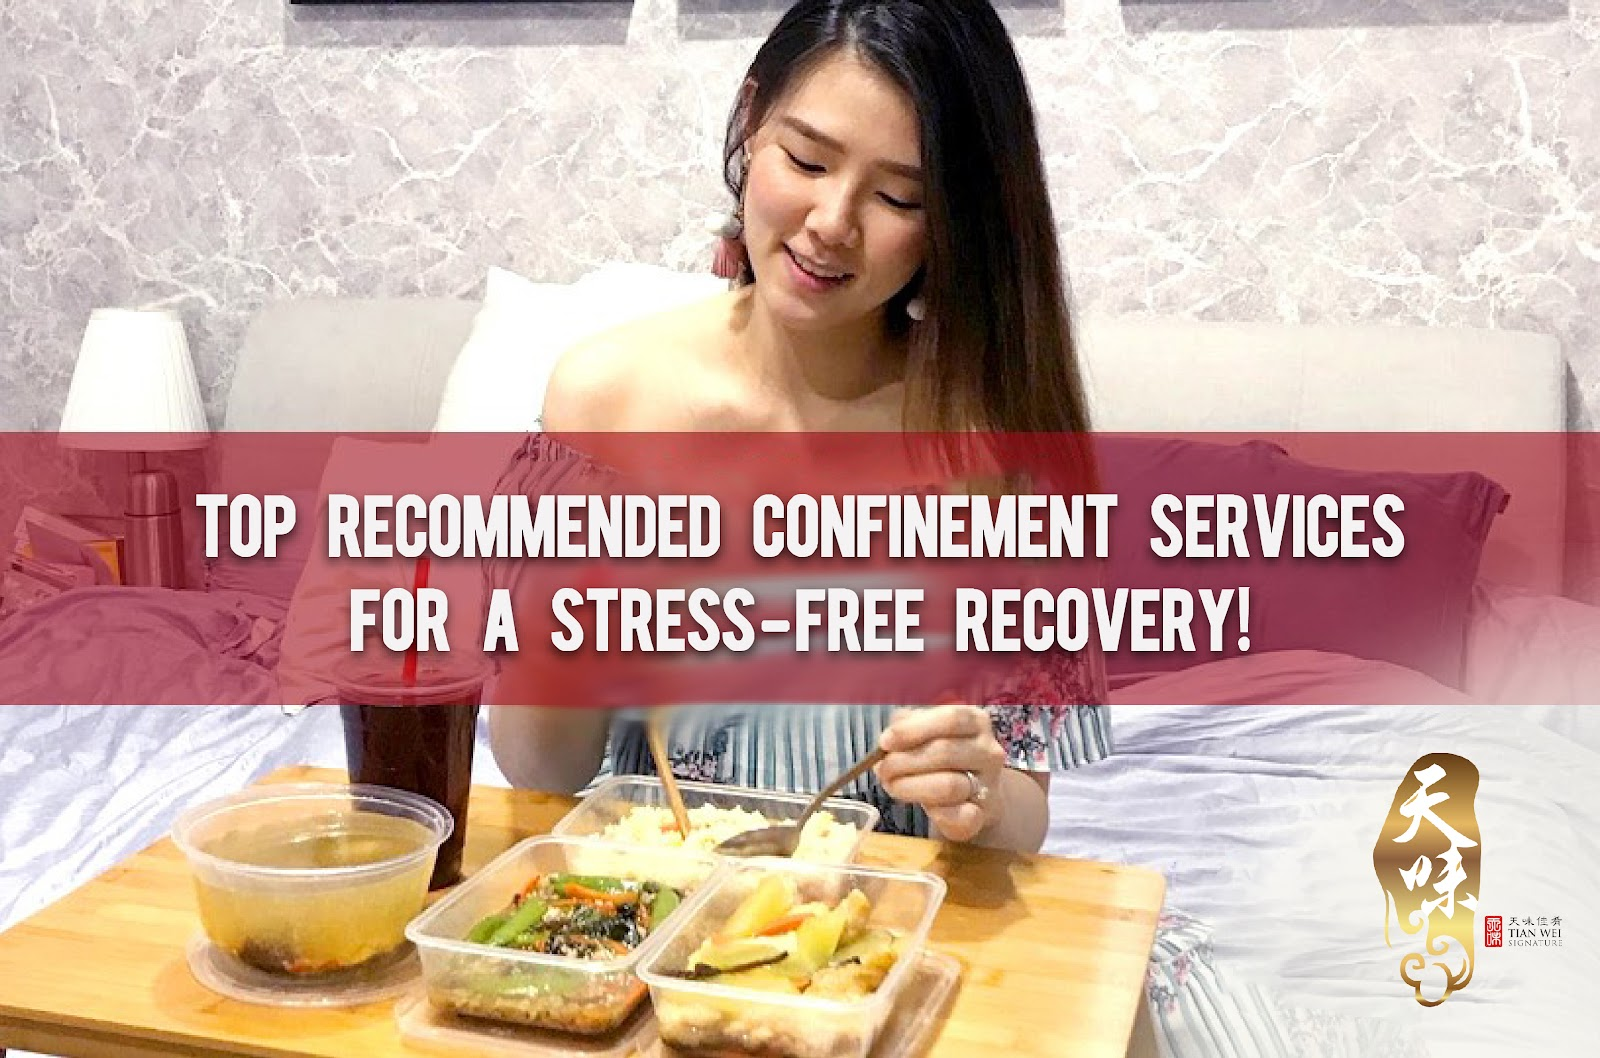 Top Recommended Confinement Services for a Stress-Free Recovery!